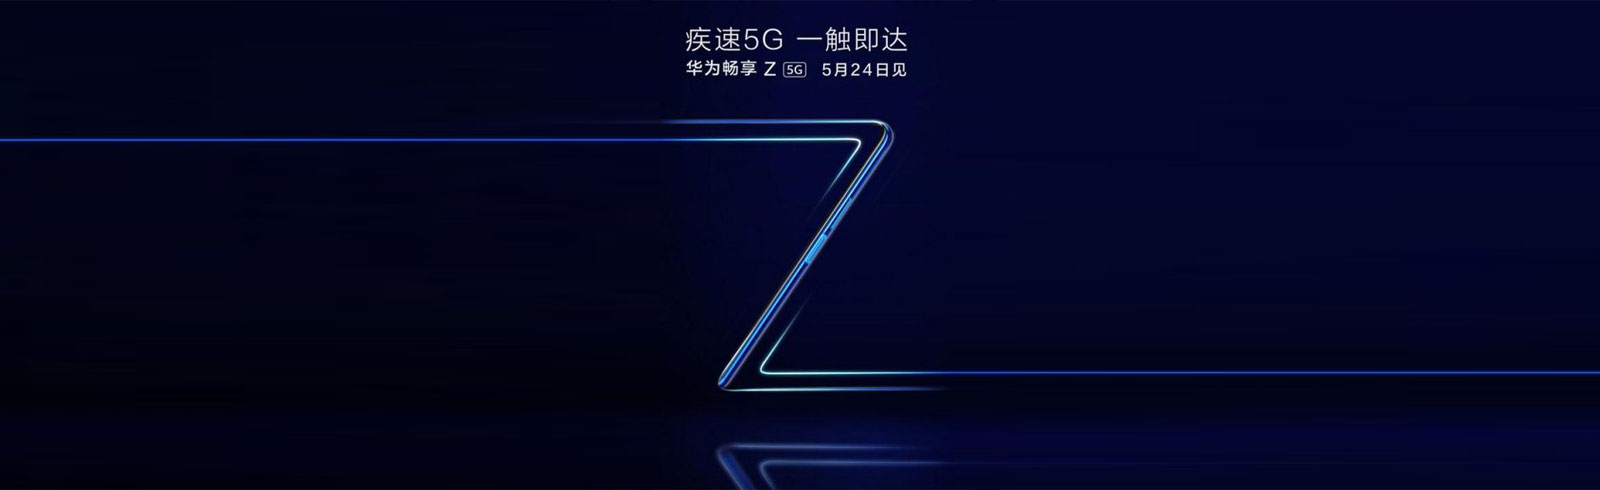 Huawei Enjoy Z 5G will be announced on May 24